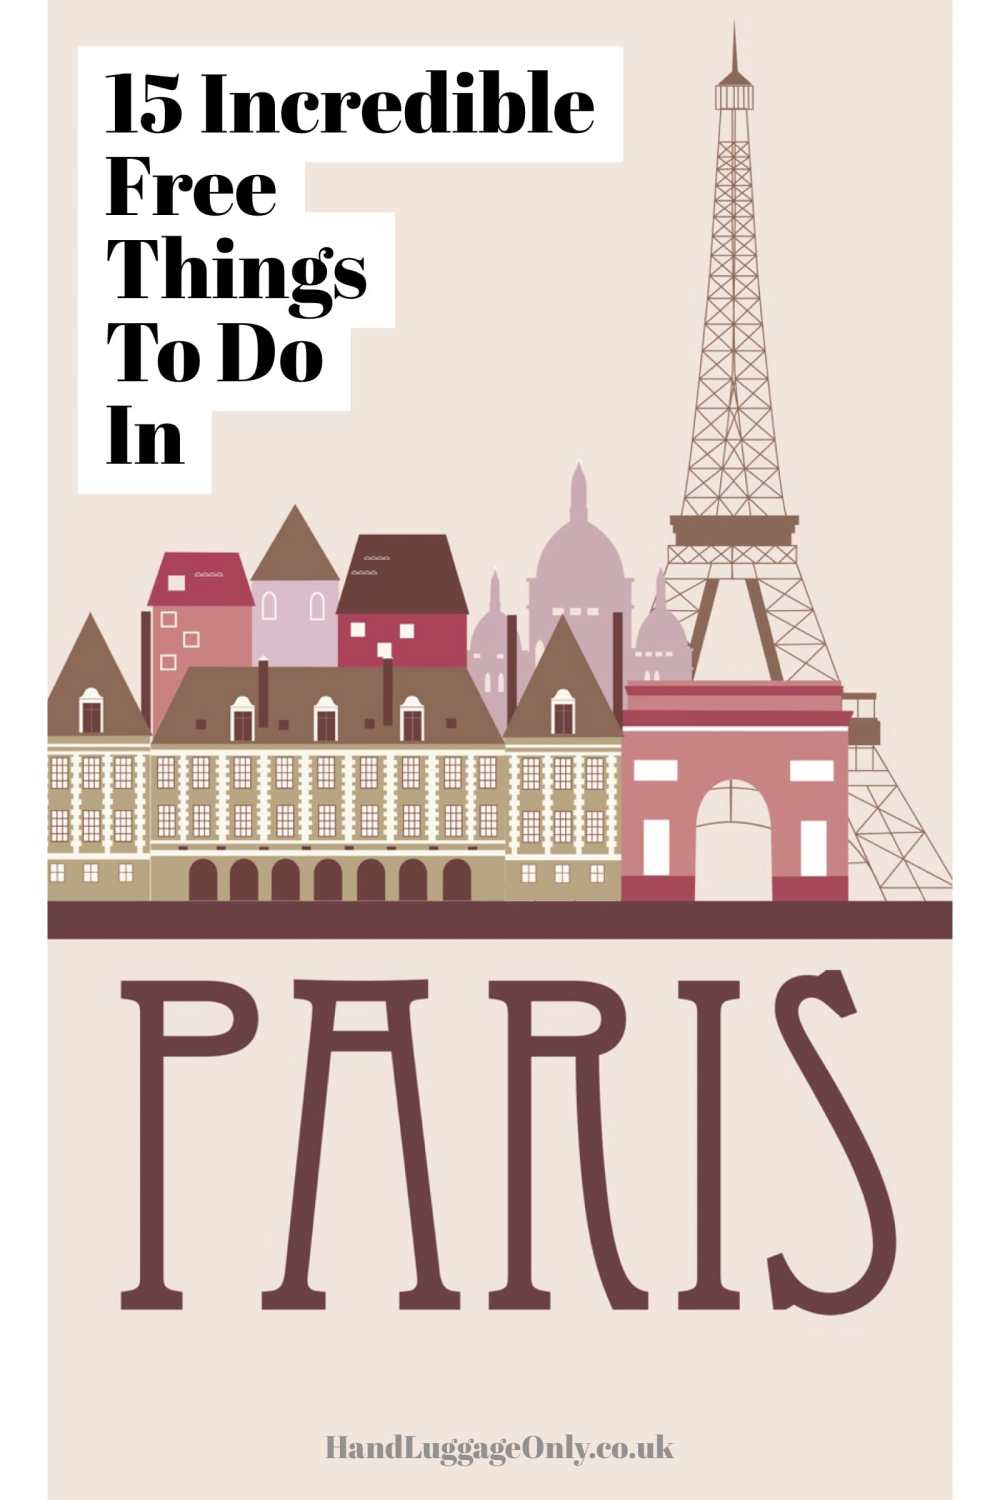 15 Free Things To Do In Paris